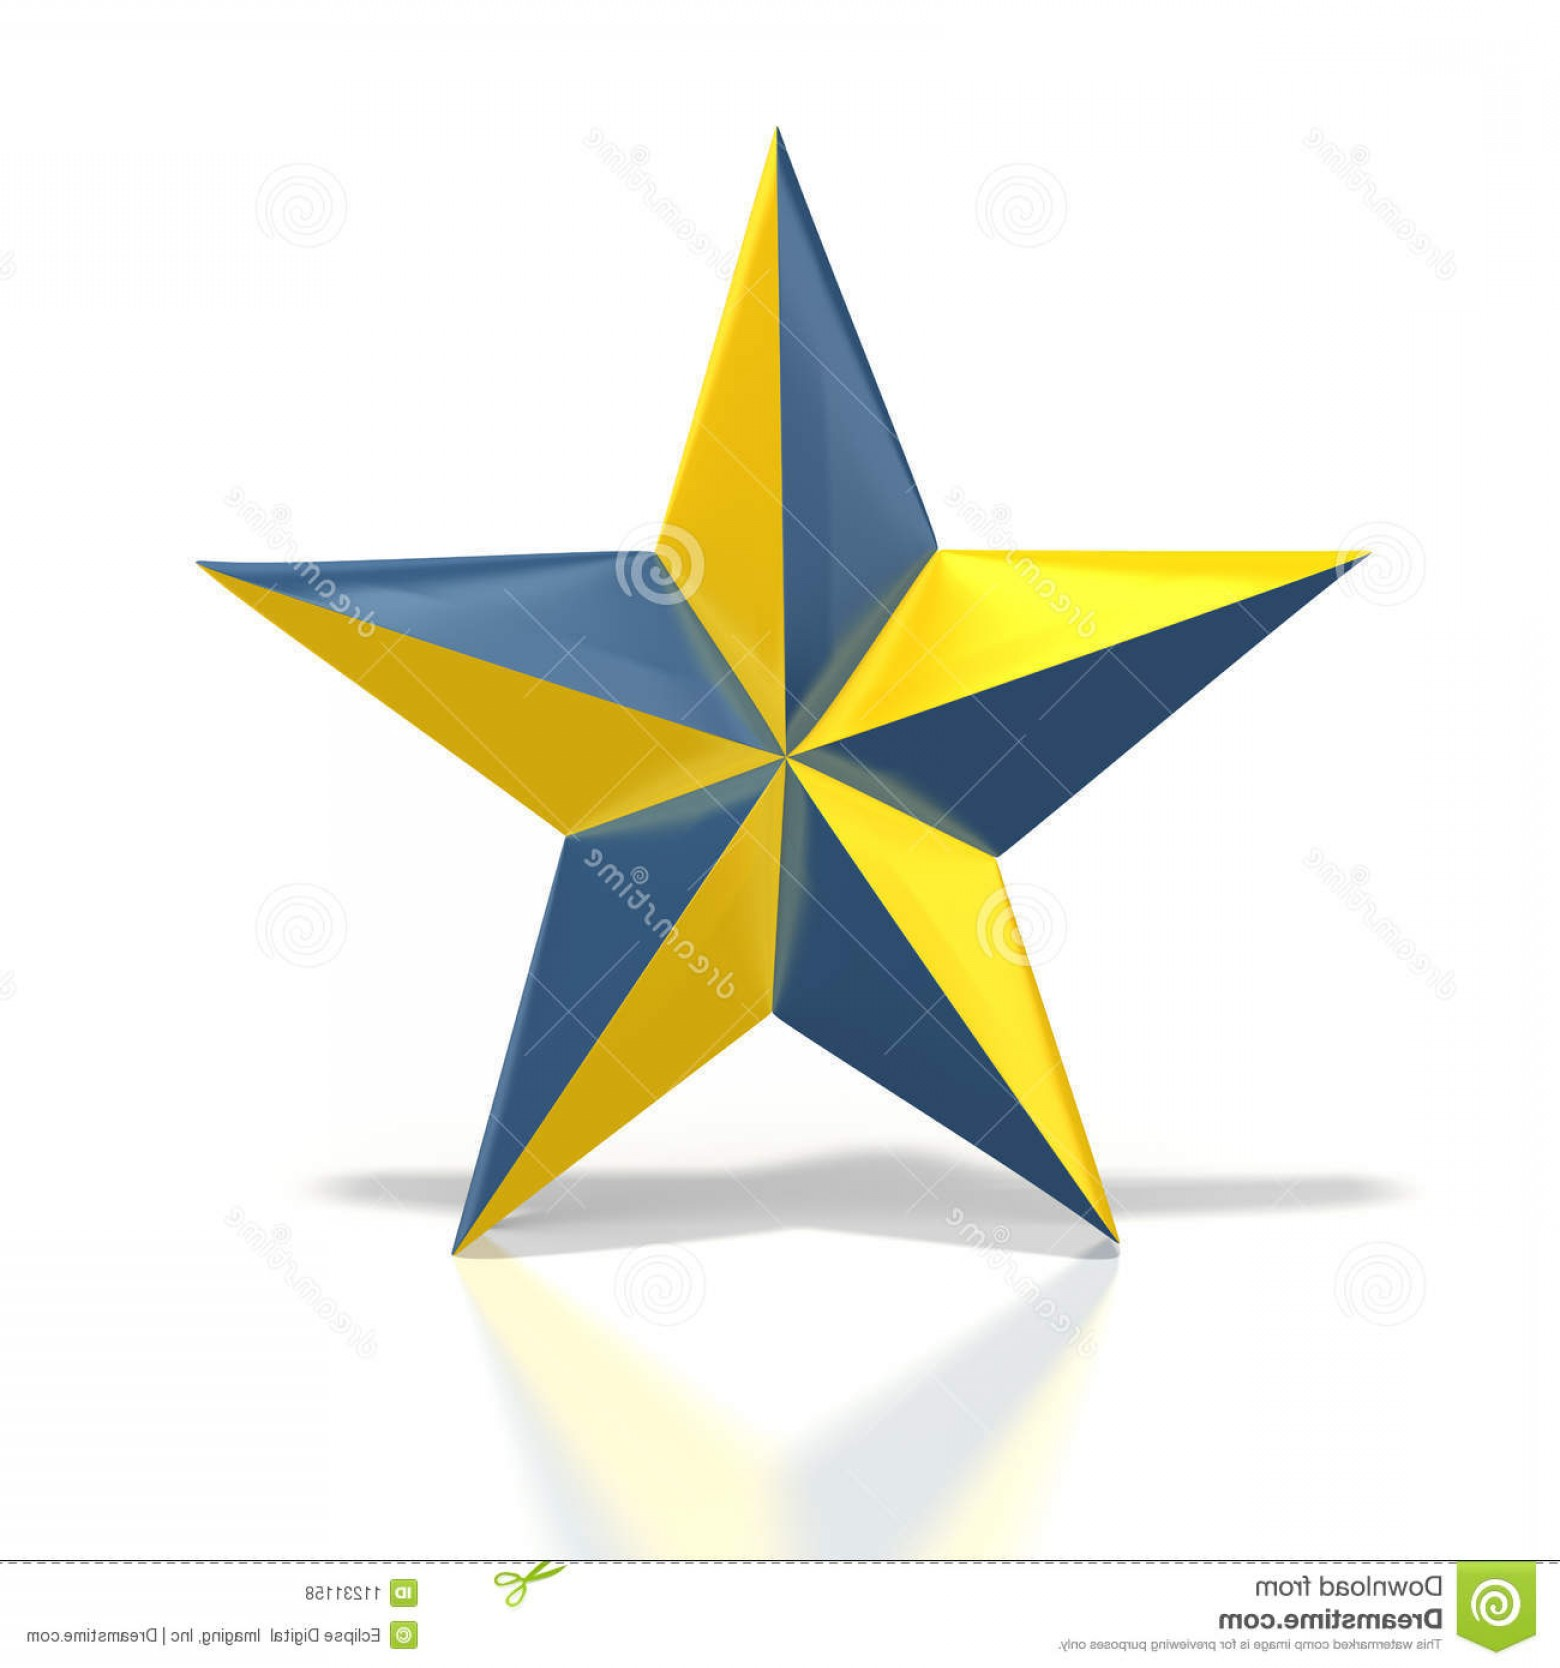 4 Point Nautical Star Vector: Royalty Free Stock Photos Blue Yellow Star Image